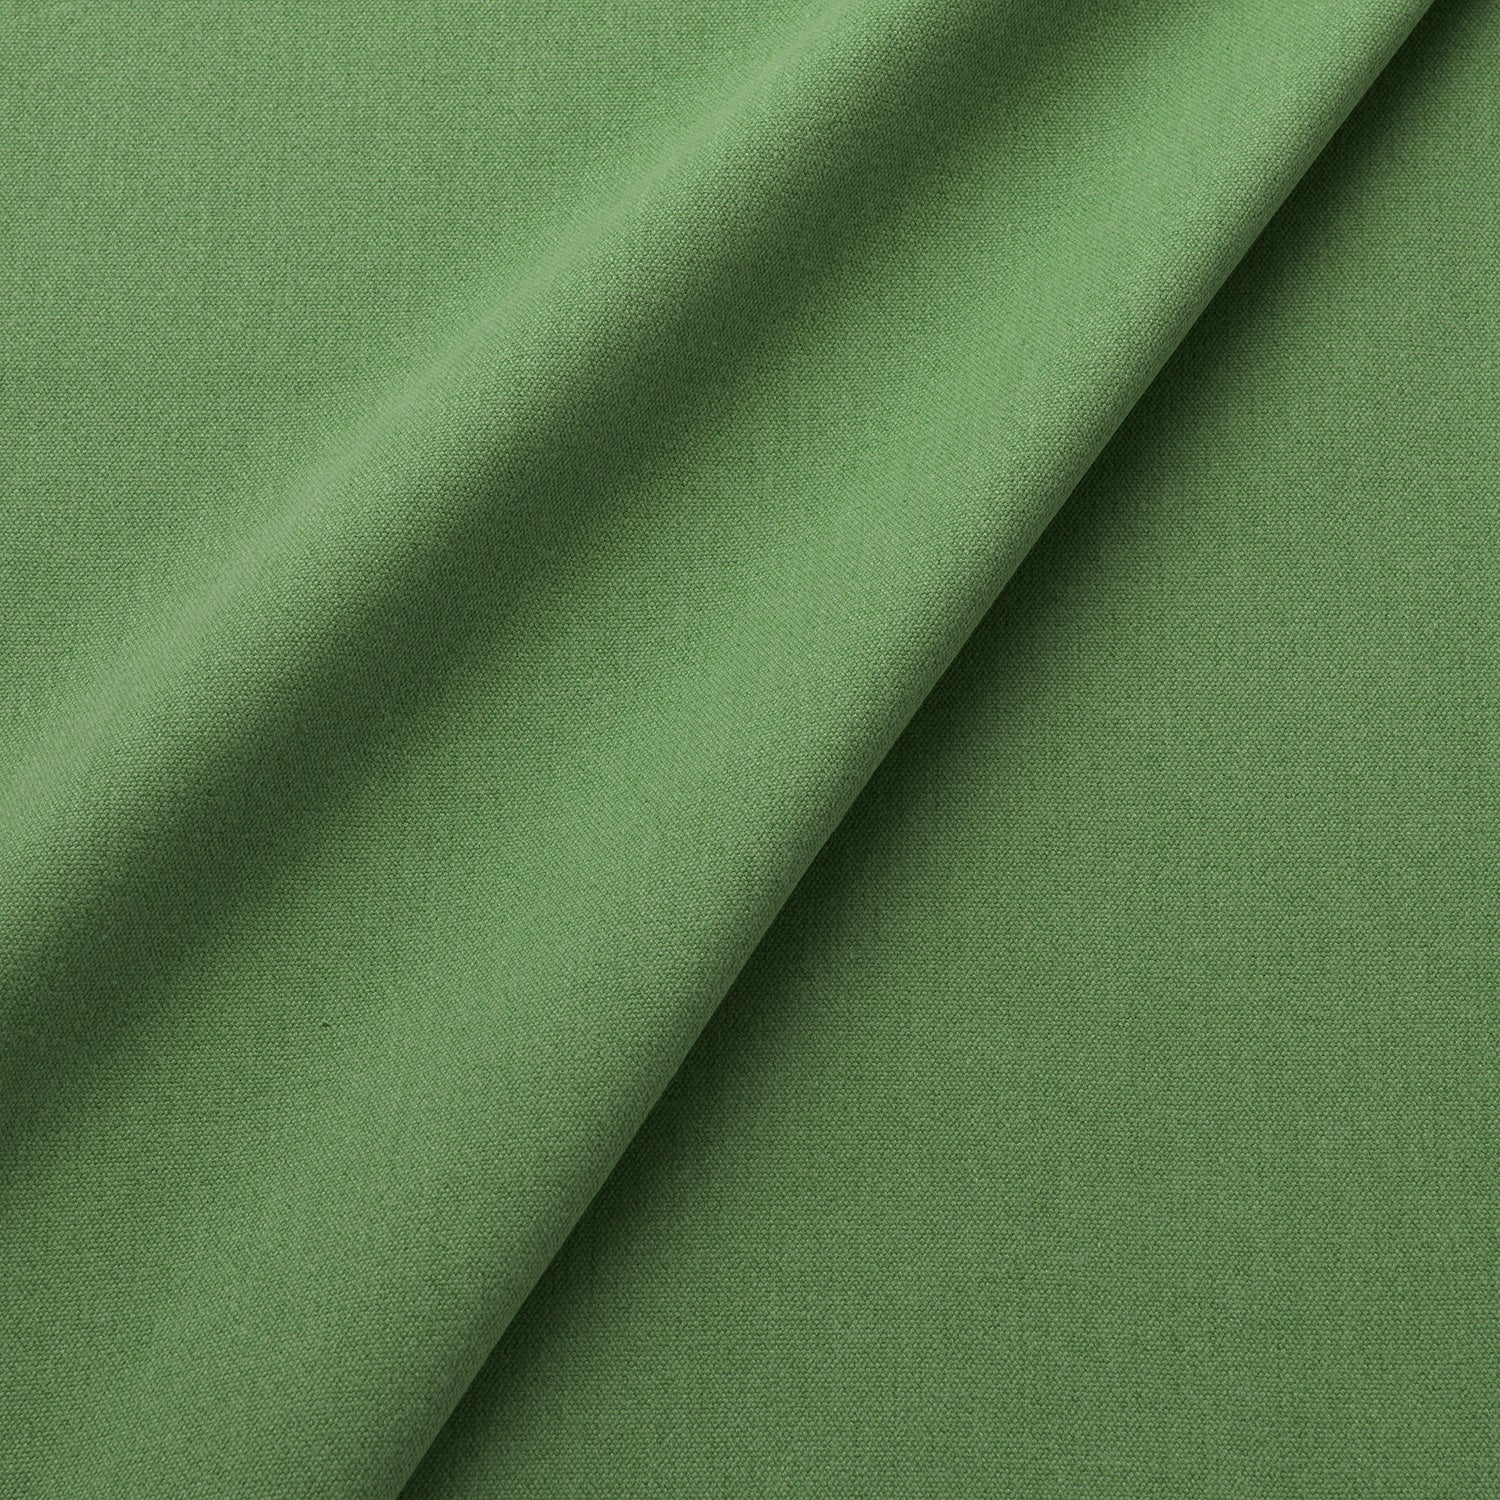 Fabric swatch of a eco-friendly plain green fabric for curtains and upholstery